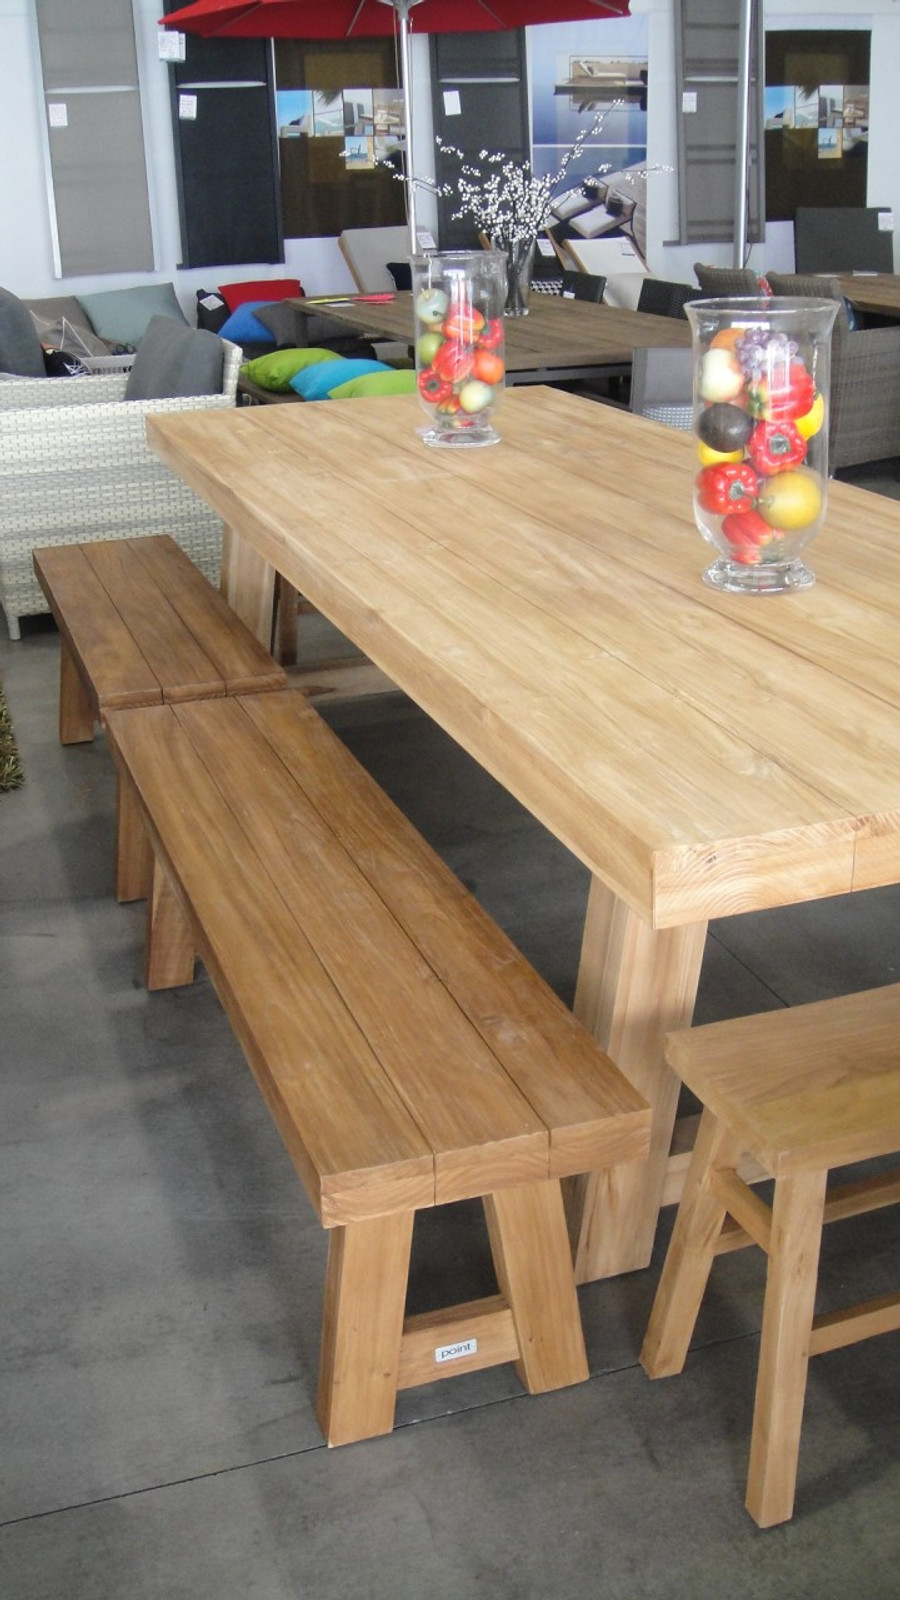 2 x 130cm block benches used on 3m block table